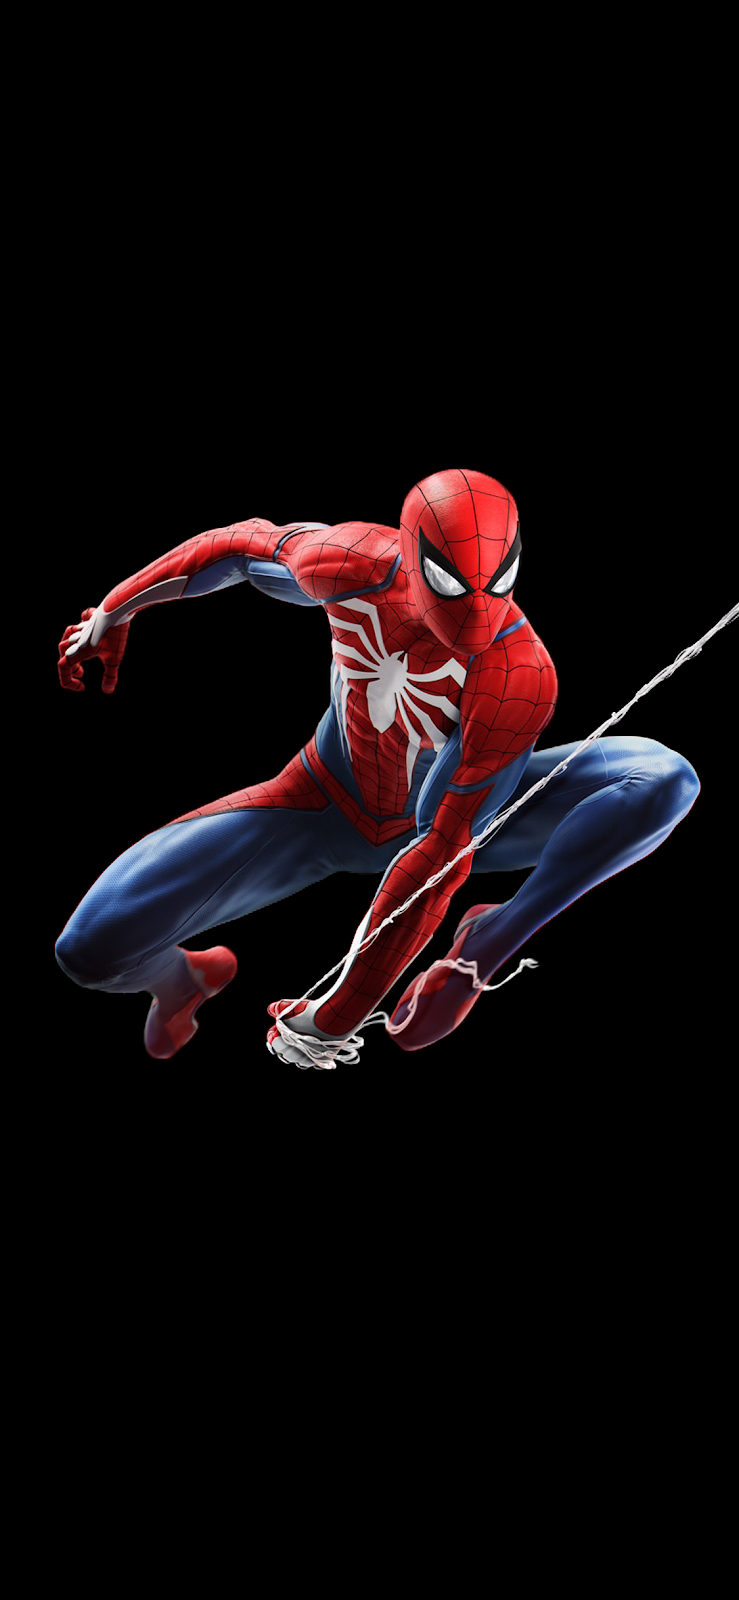 Pin On Cool Spiderman